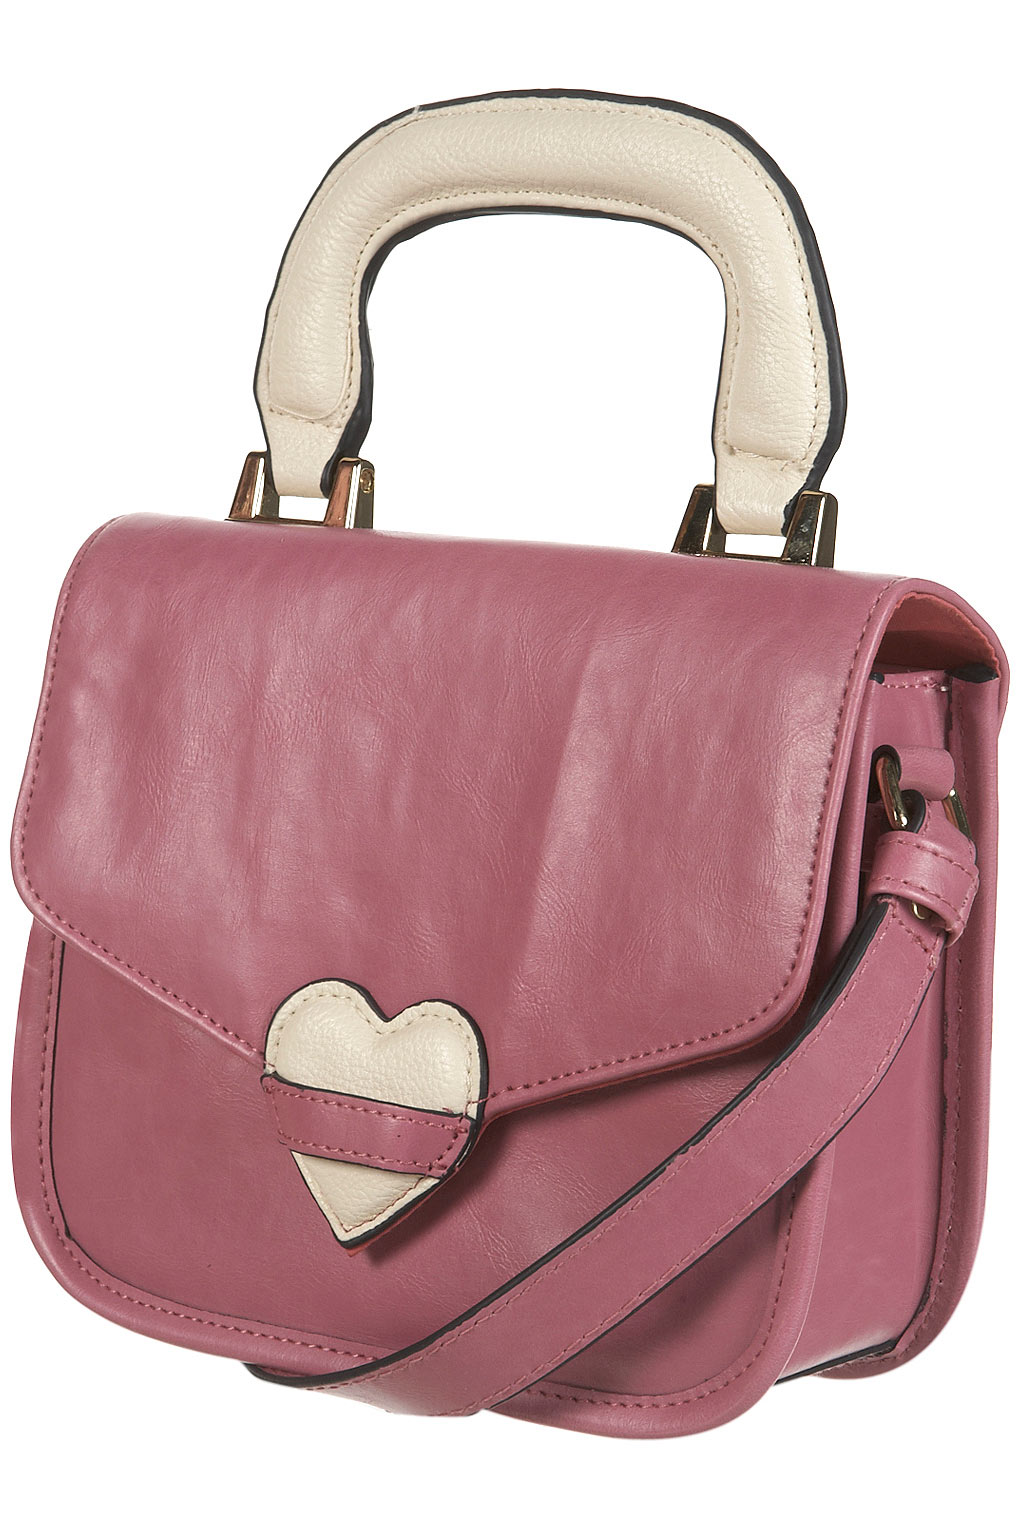 Topshop Pink Padded Heart Bag Lyst